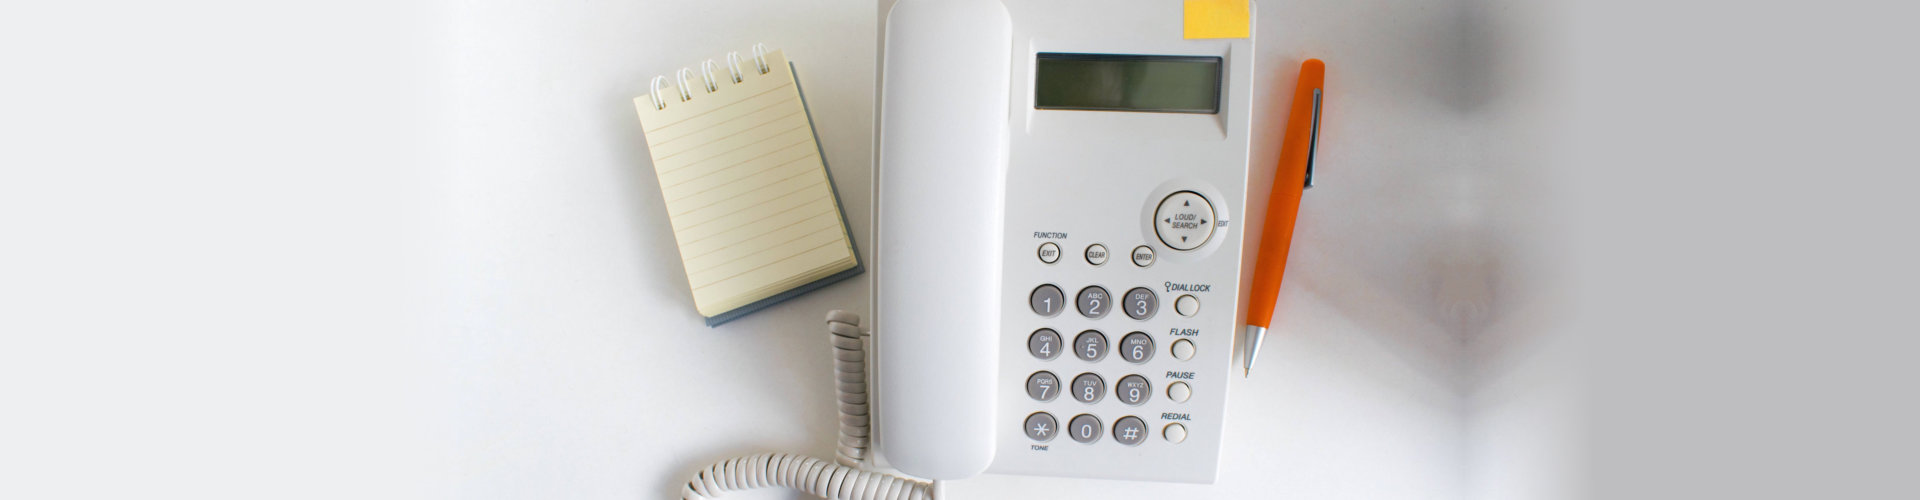 telephone with pad and pen